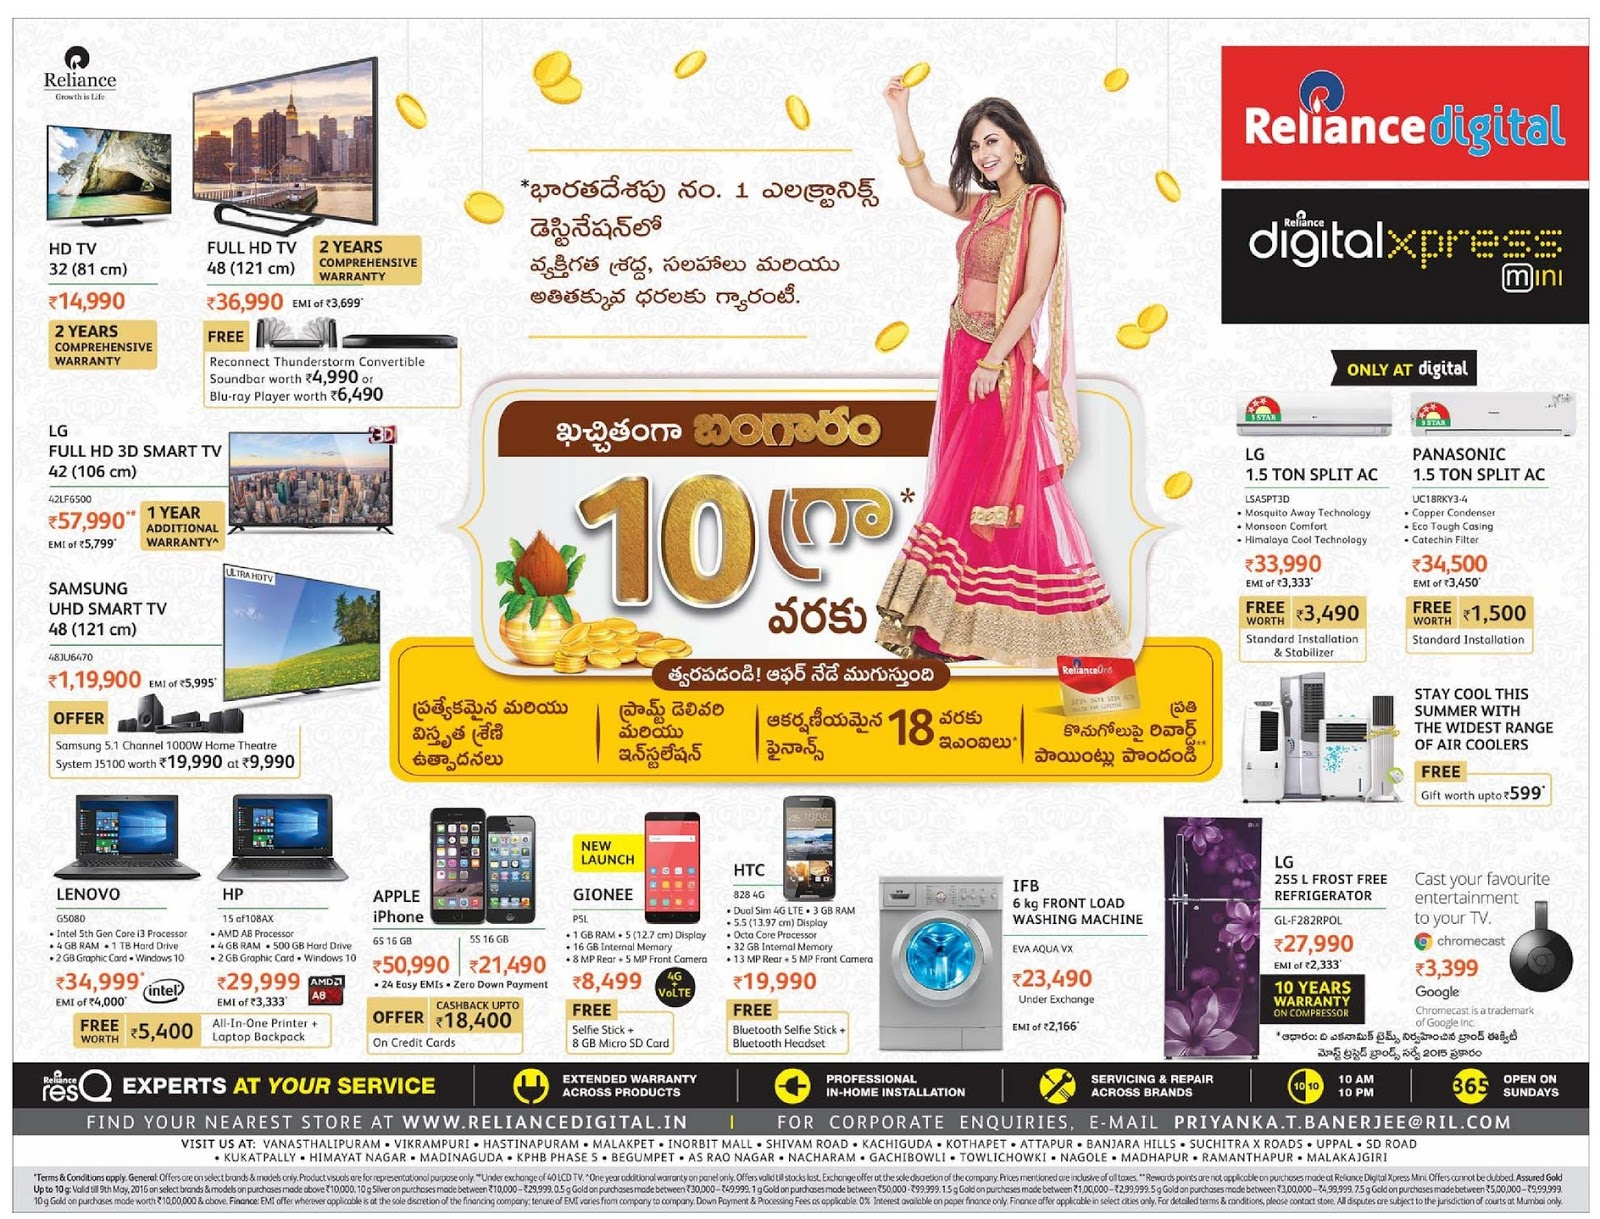 Get assured gold up to 10 grams in Reliance diital | Akshaya Tritiya gold discount offer in May 2016